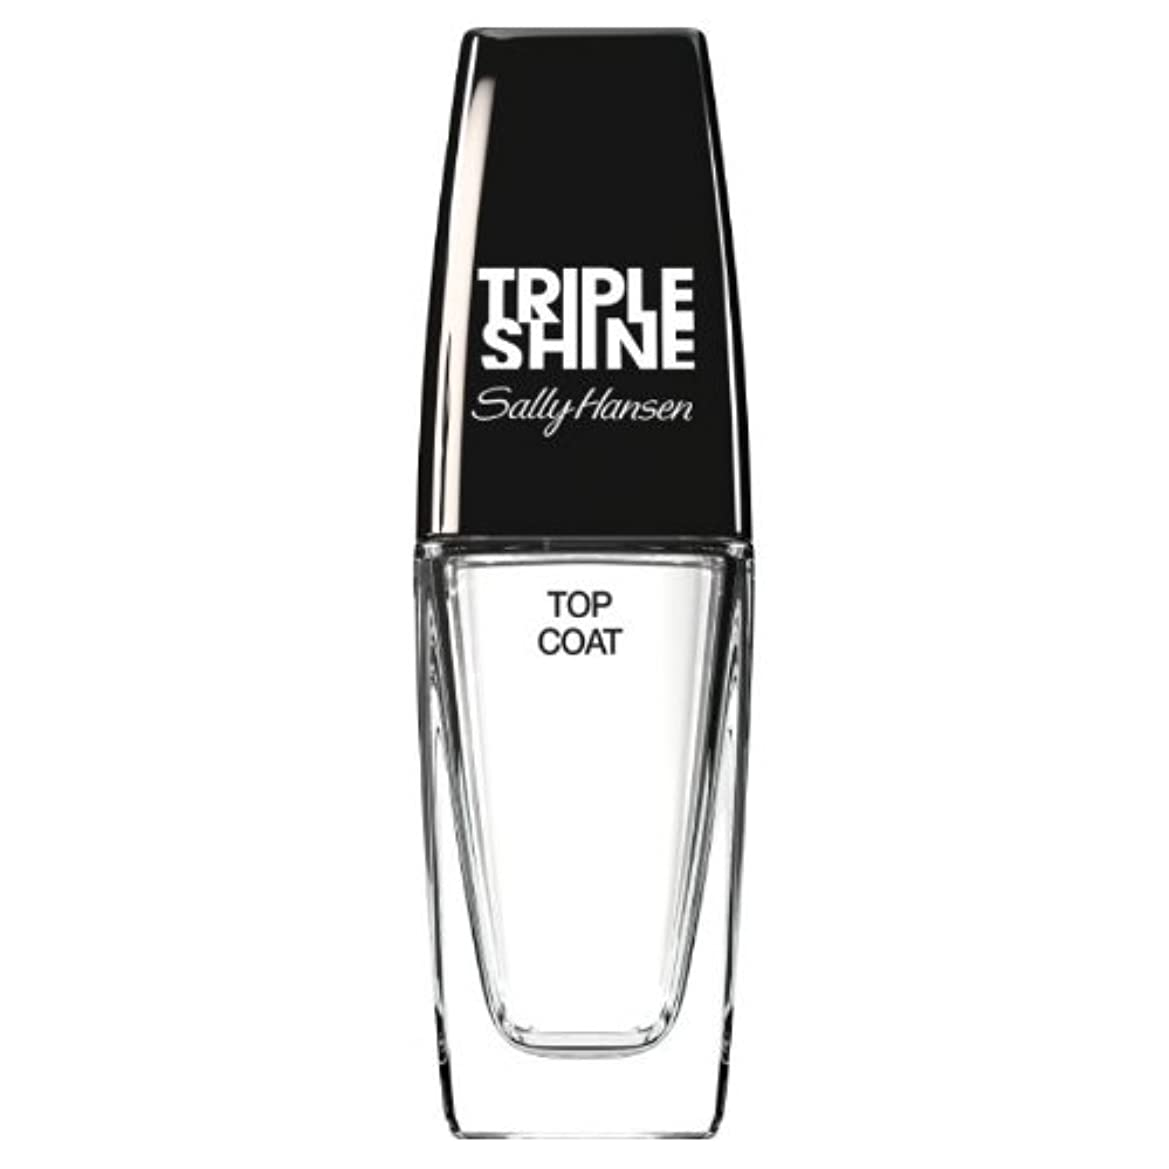 課す代わってとにかく(6 Pack) SALLY HANSEN Triple Shine Top Coat - Triple Shine Top Coat (並行輸入品)